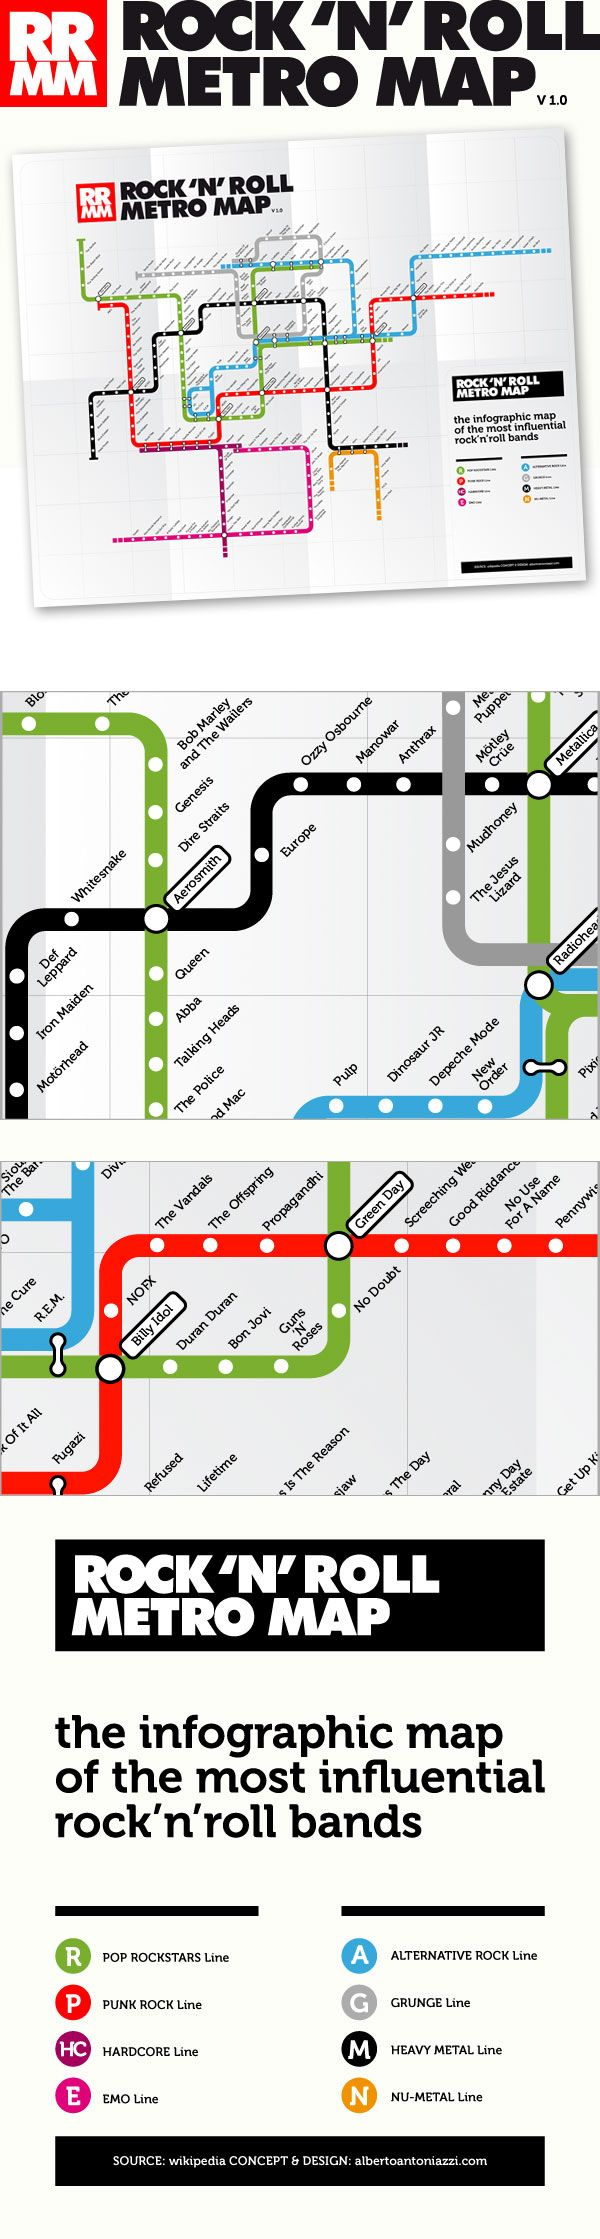 The Rock 'N' Roll Metro Map by Alberto Antoniazzi, via Behance